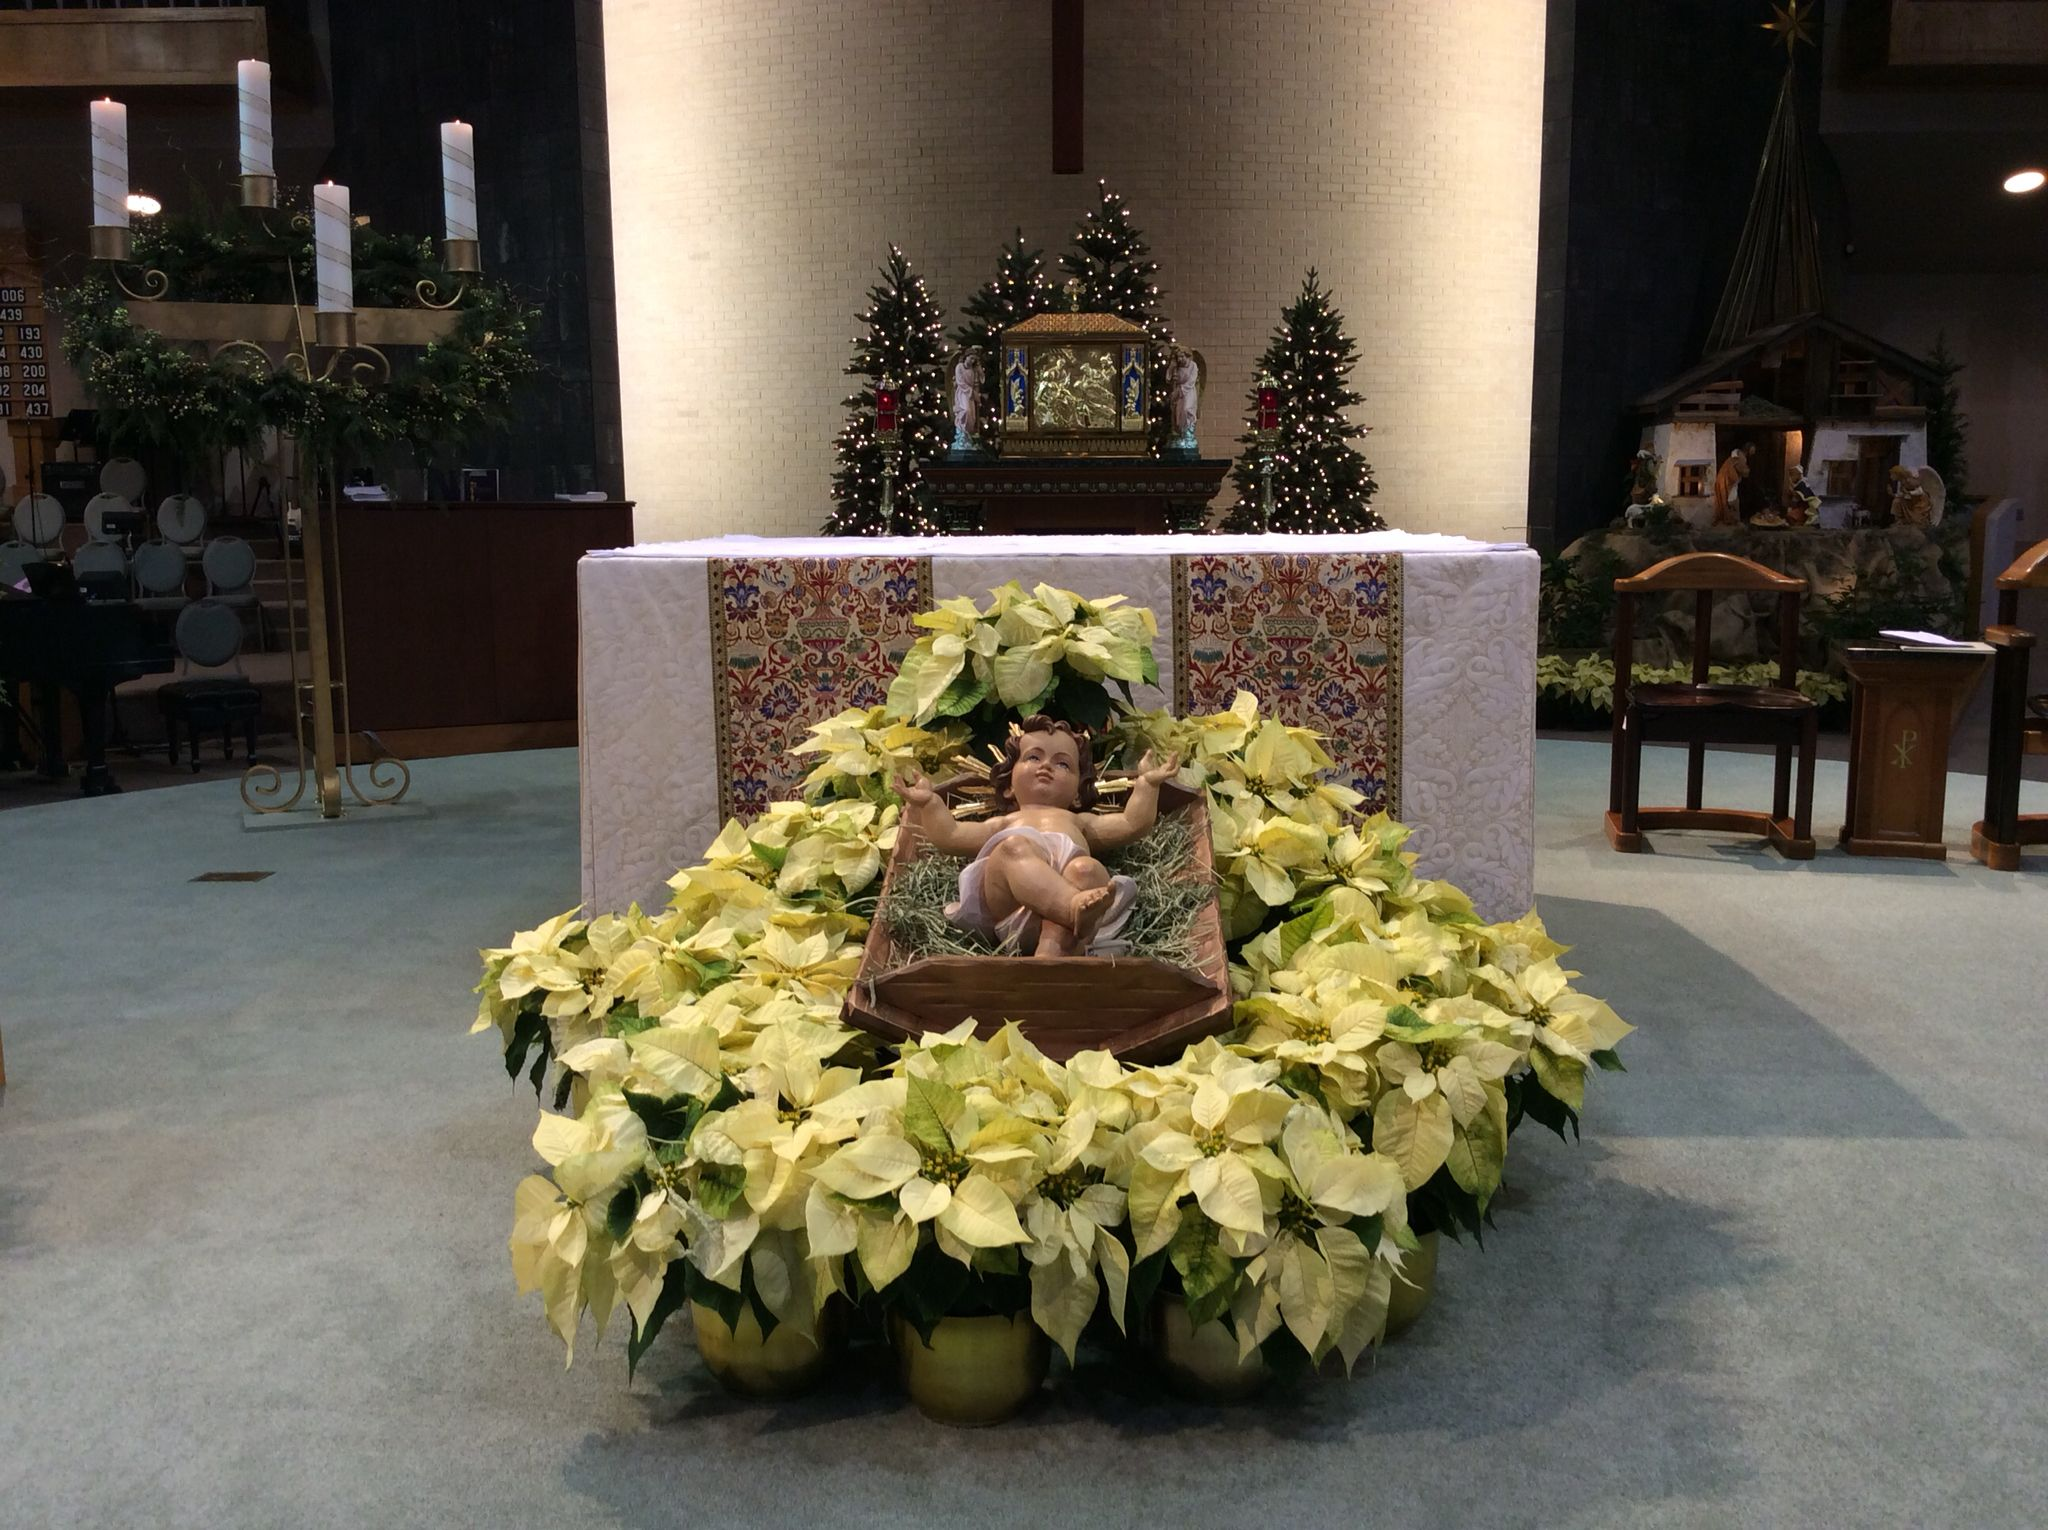 Altar decorated with baby Jesus and poinsettias for Christmas